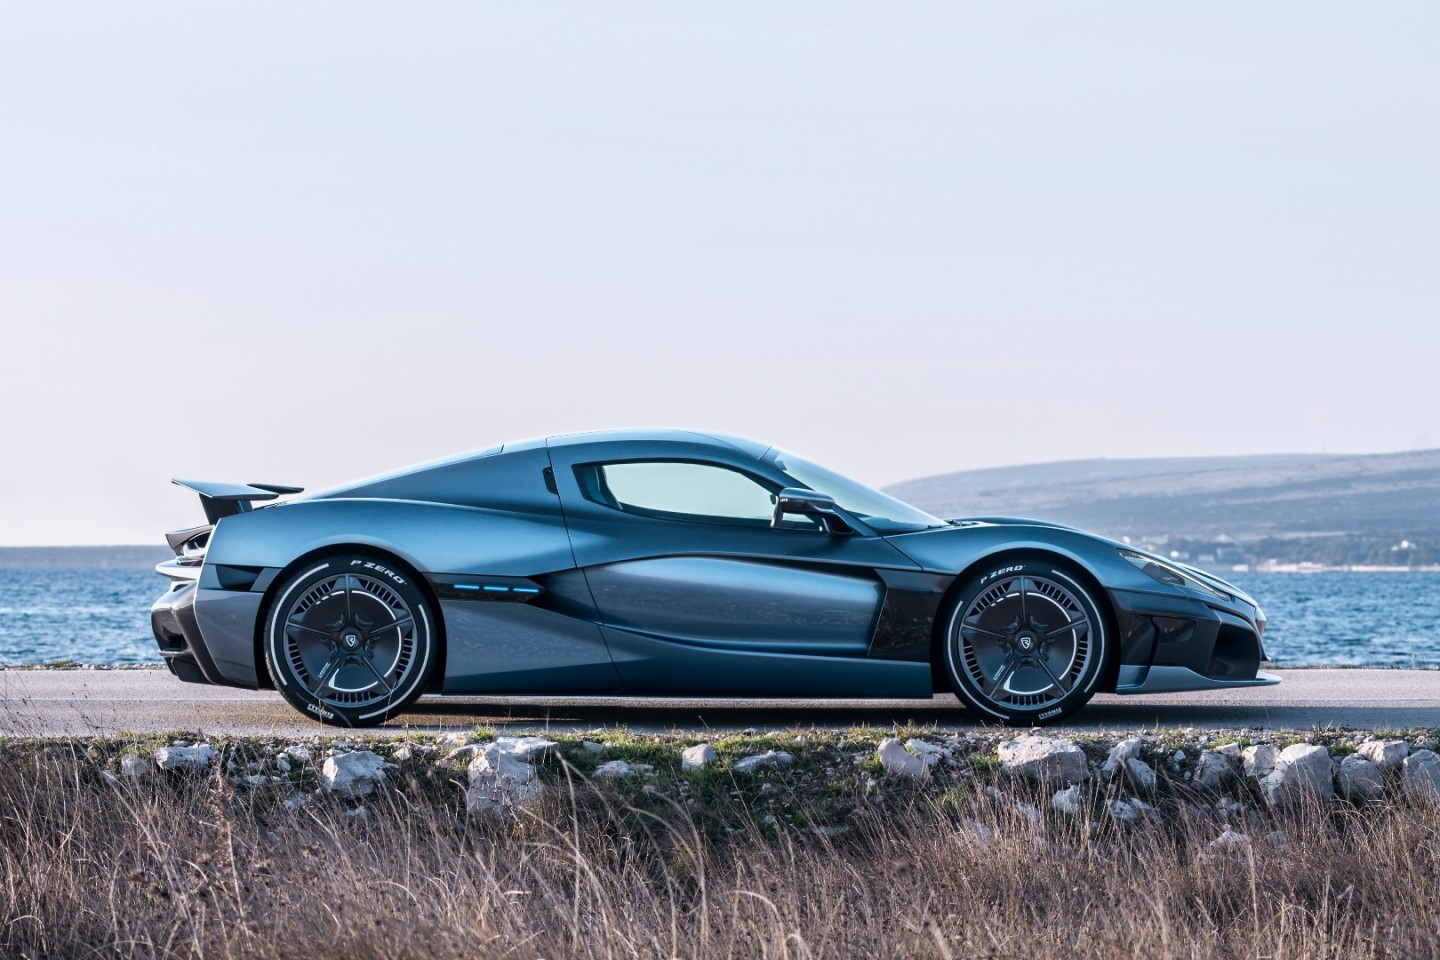 Rimac C_Two: will give you two solid laps of the Nurburgring if driven like it's designed to be driven